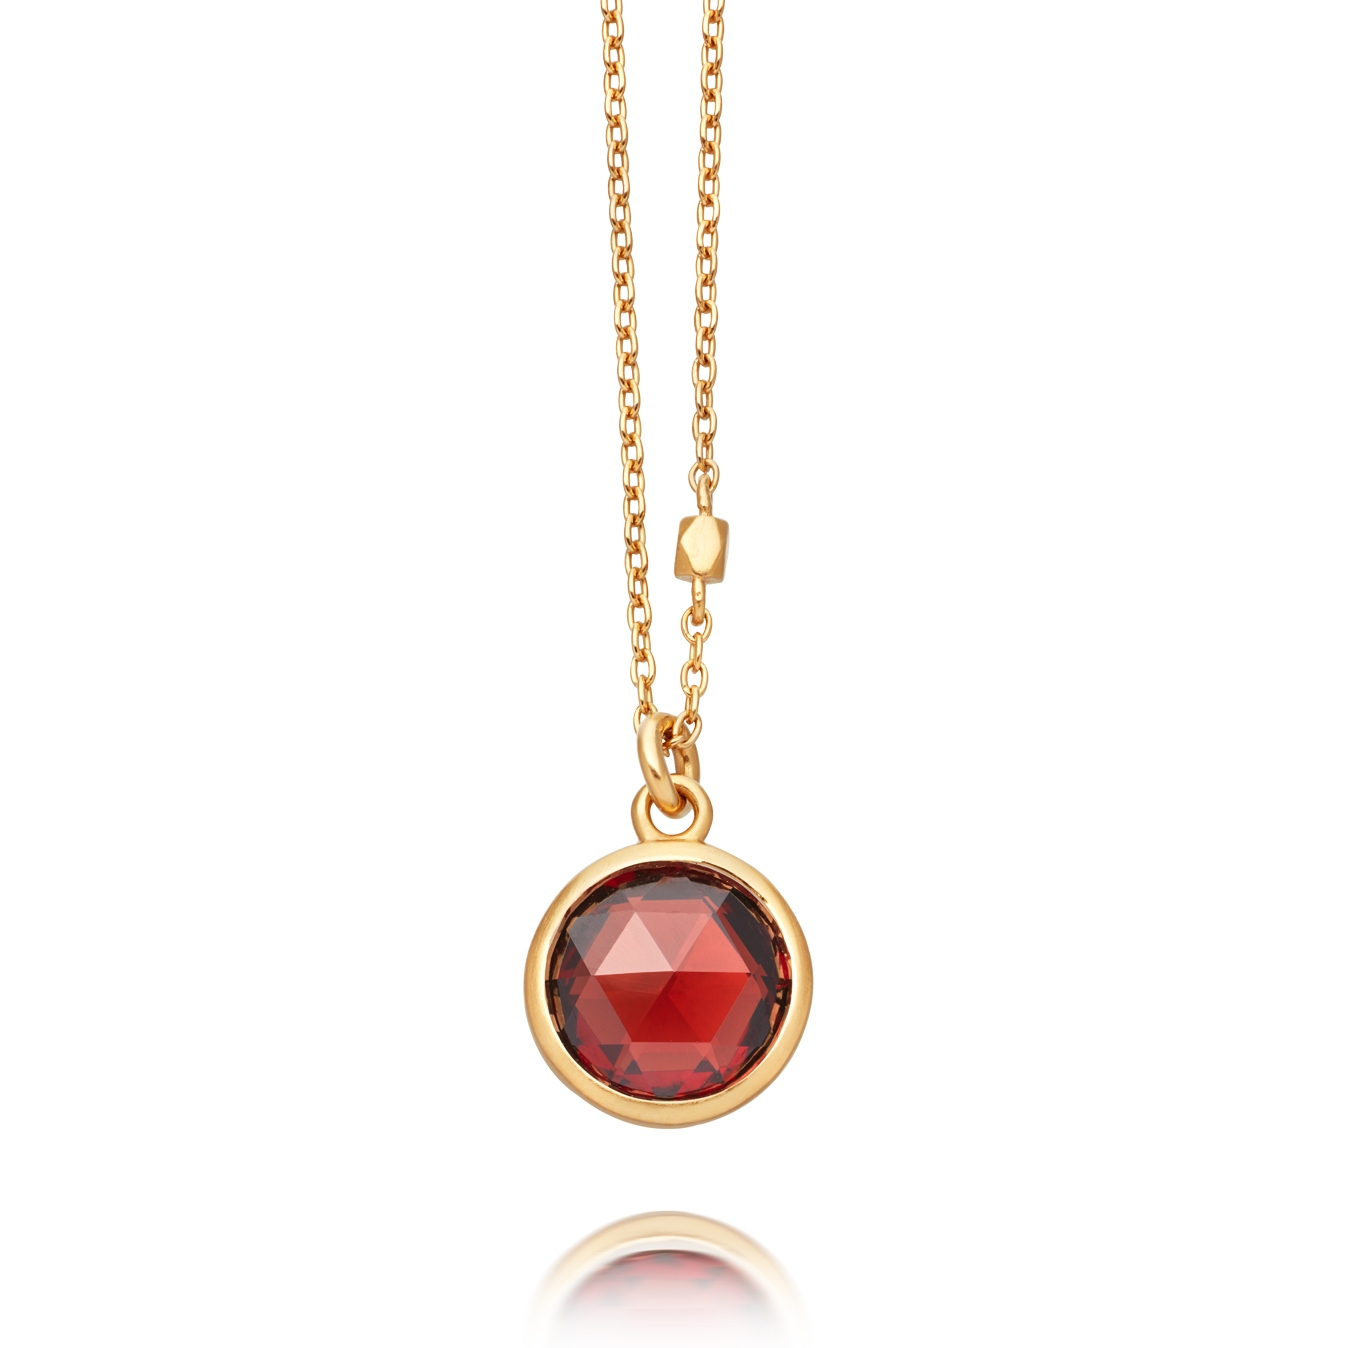 Round Stilla Red Garnet Pendant Necklace